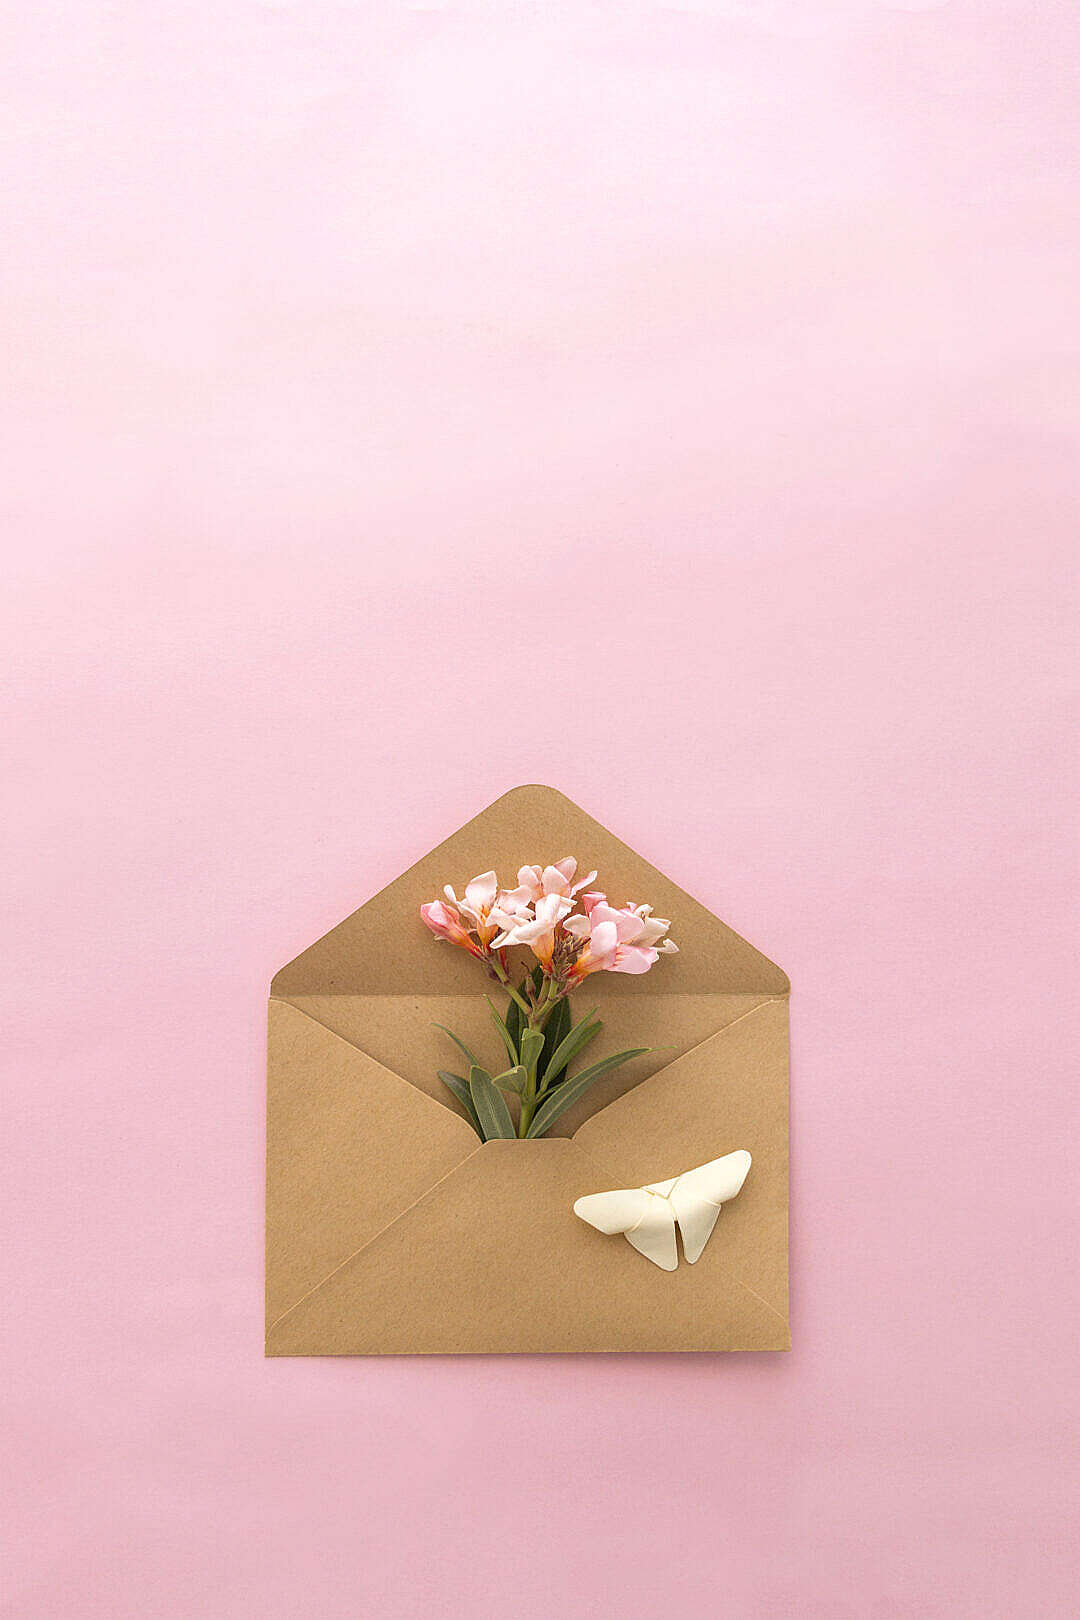 Download Retro Envelope with Flowers Inside FREE Stock Photo